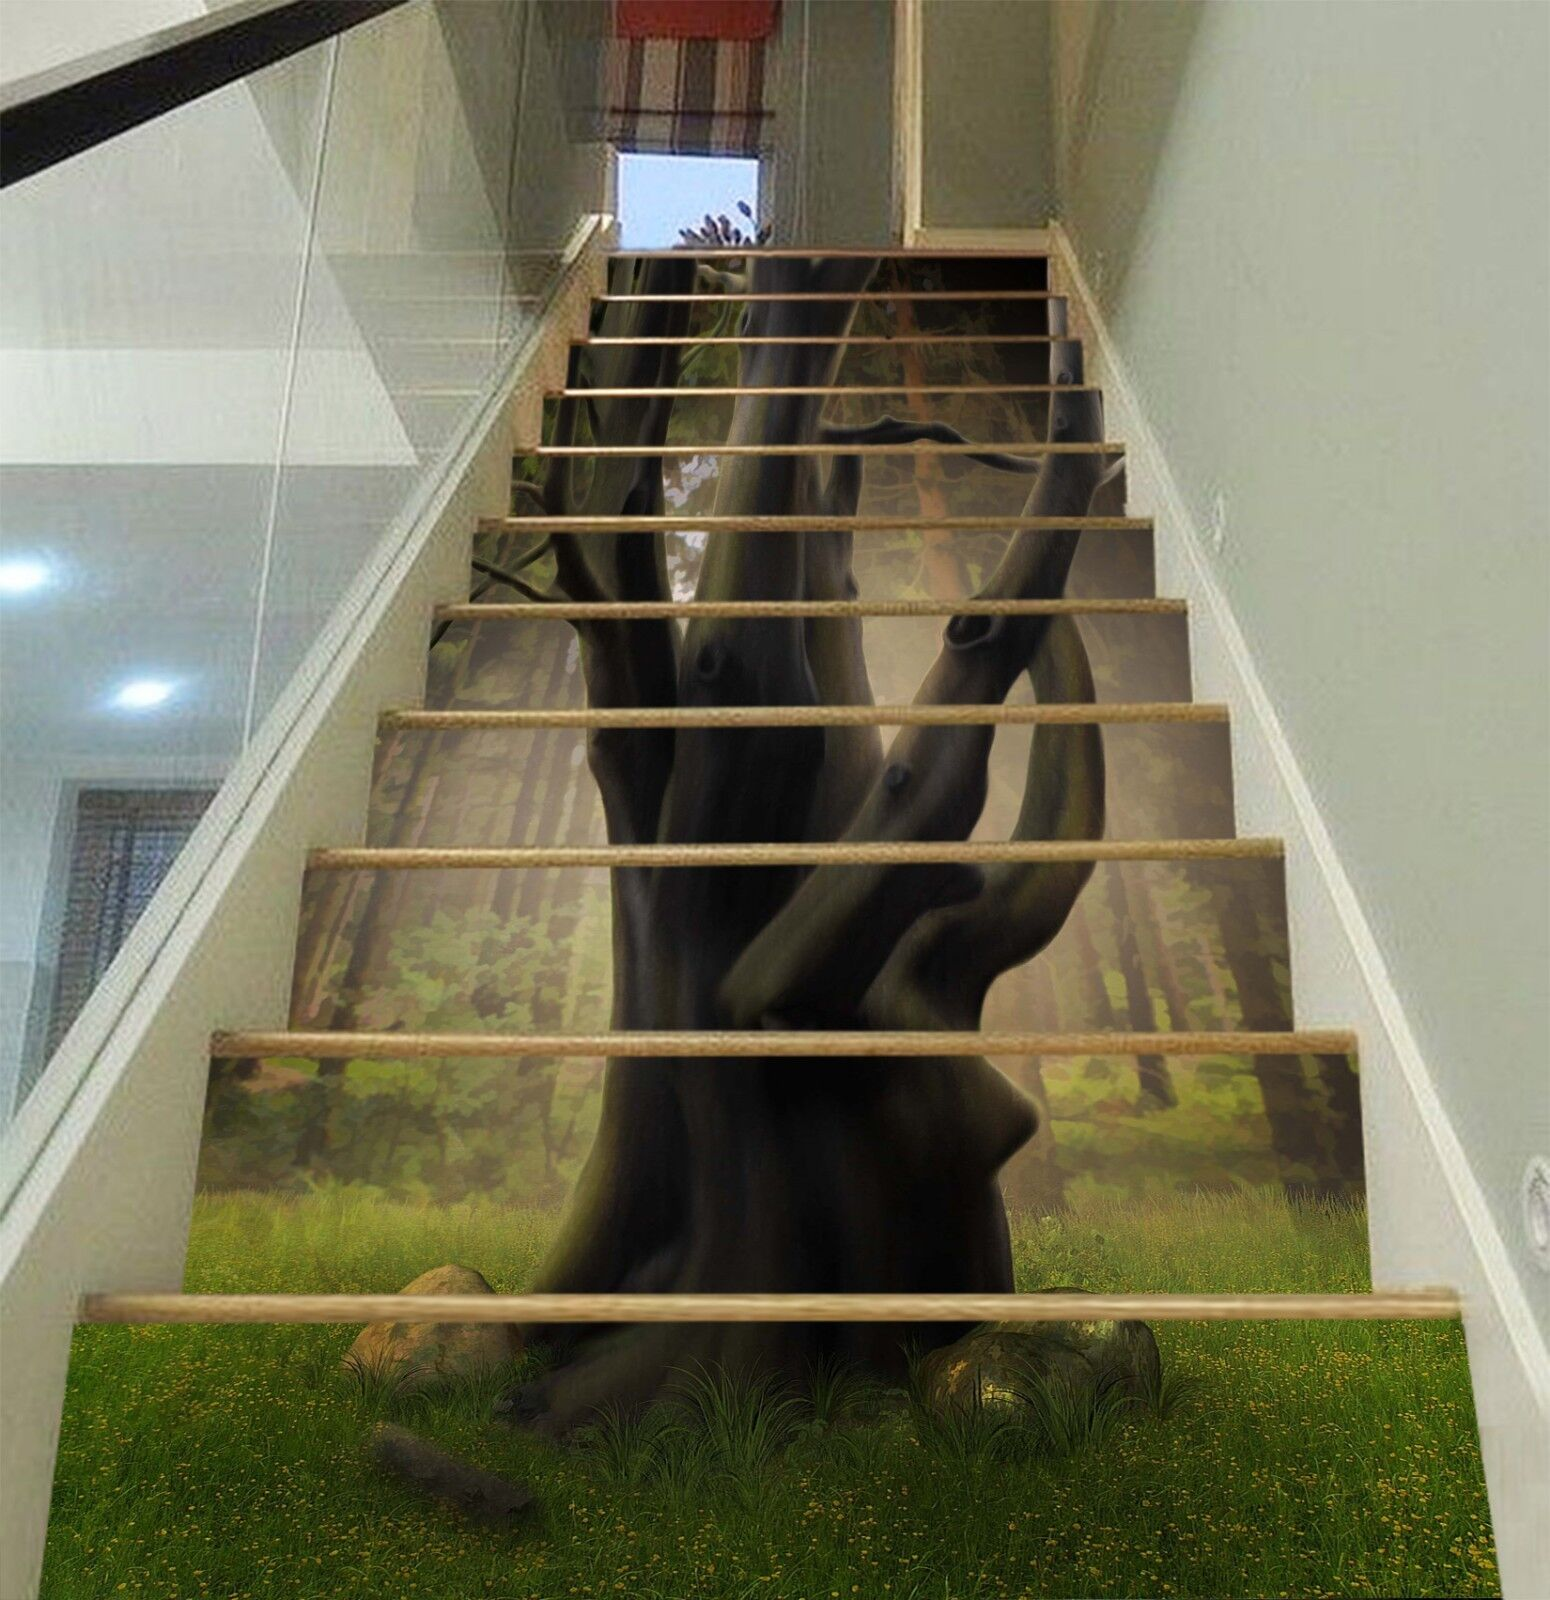 3D Trunk Meadow 4 Stair Risers Decoration Photo Mural Vinyl Decal Wallpaper CA